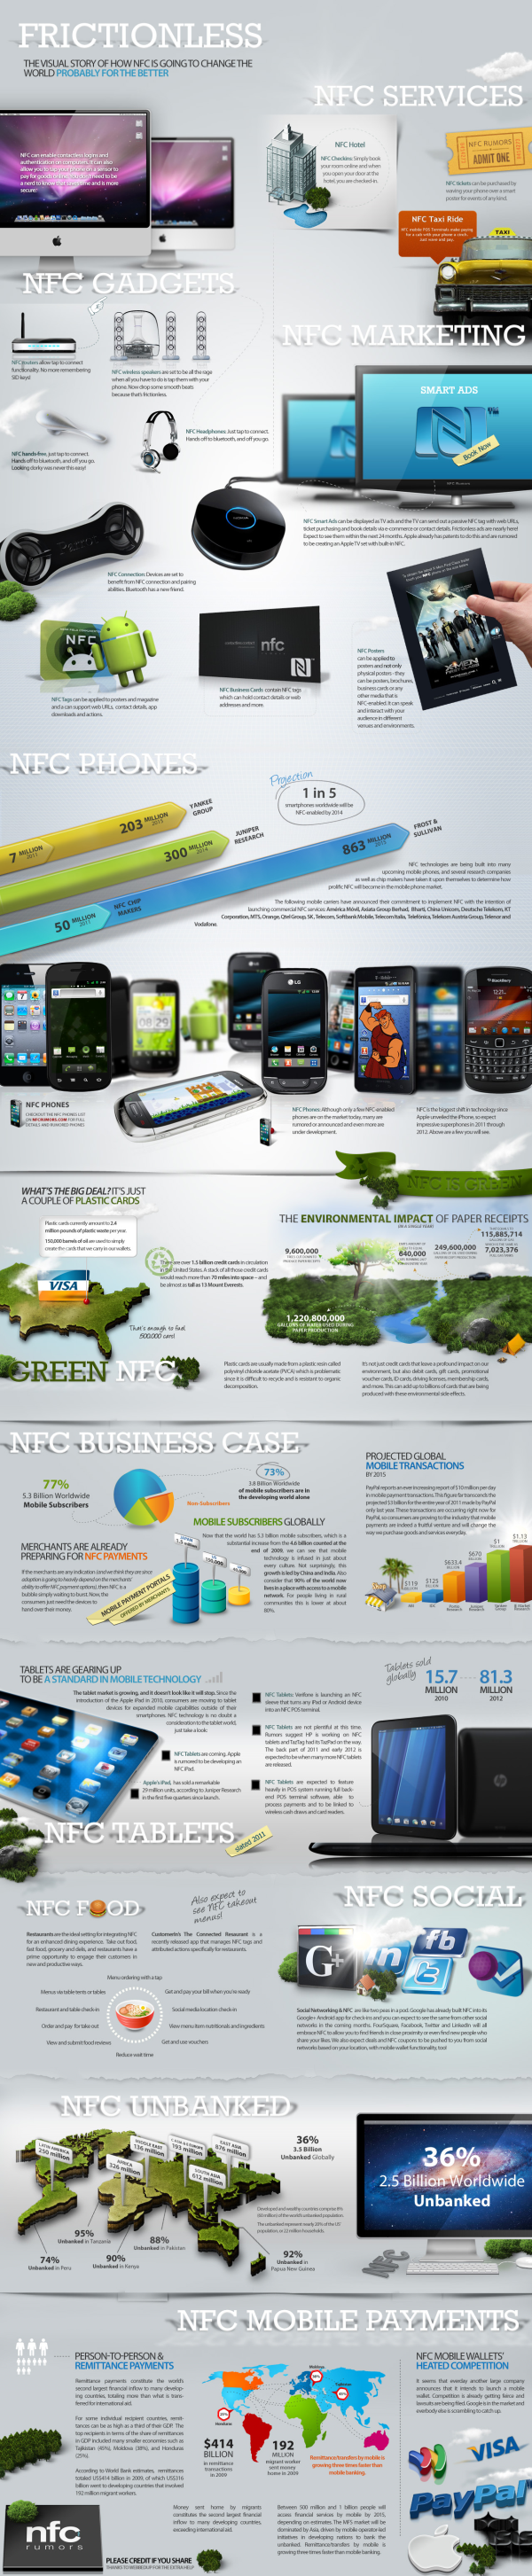 NFC Infographic resized 600